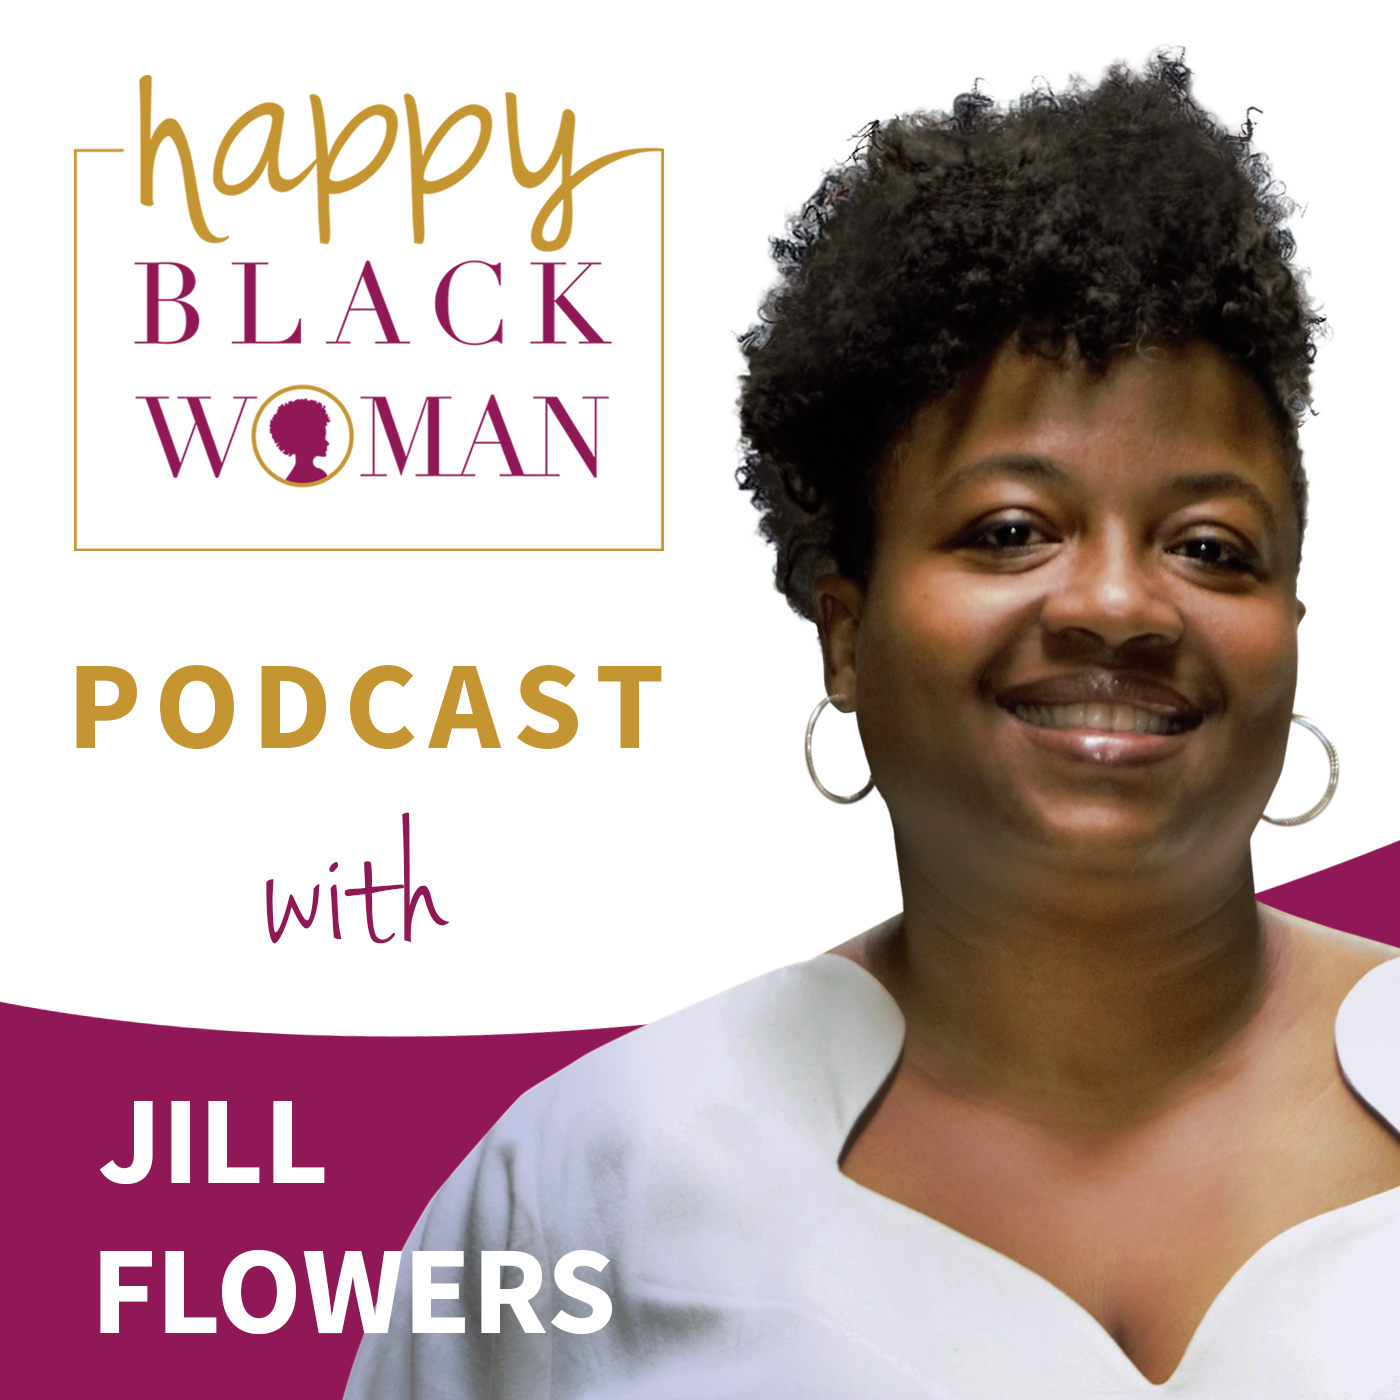 HBW101: Jill Flowers, Empowering Black Women to Heal